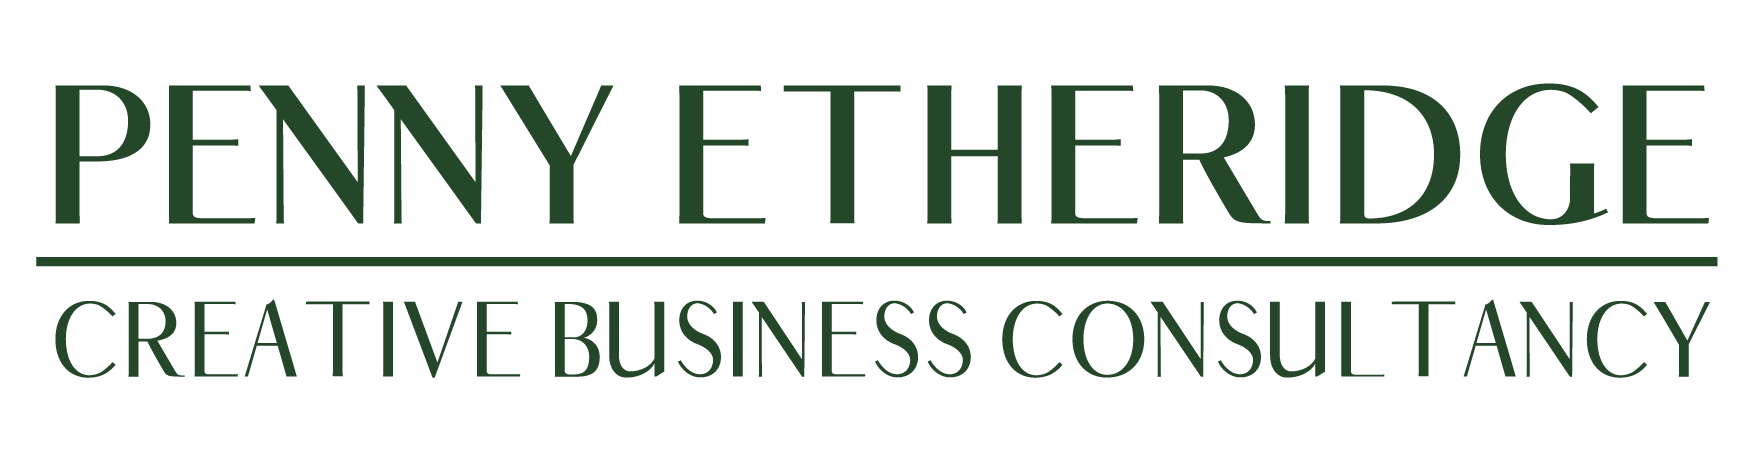 Penny Etheridge Creative Business Consultancy Logo